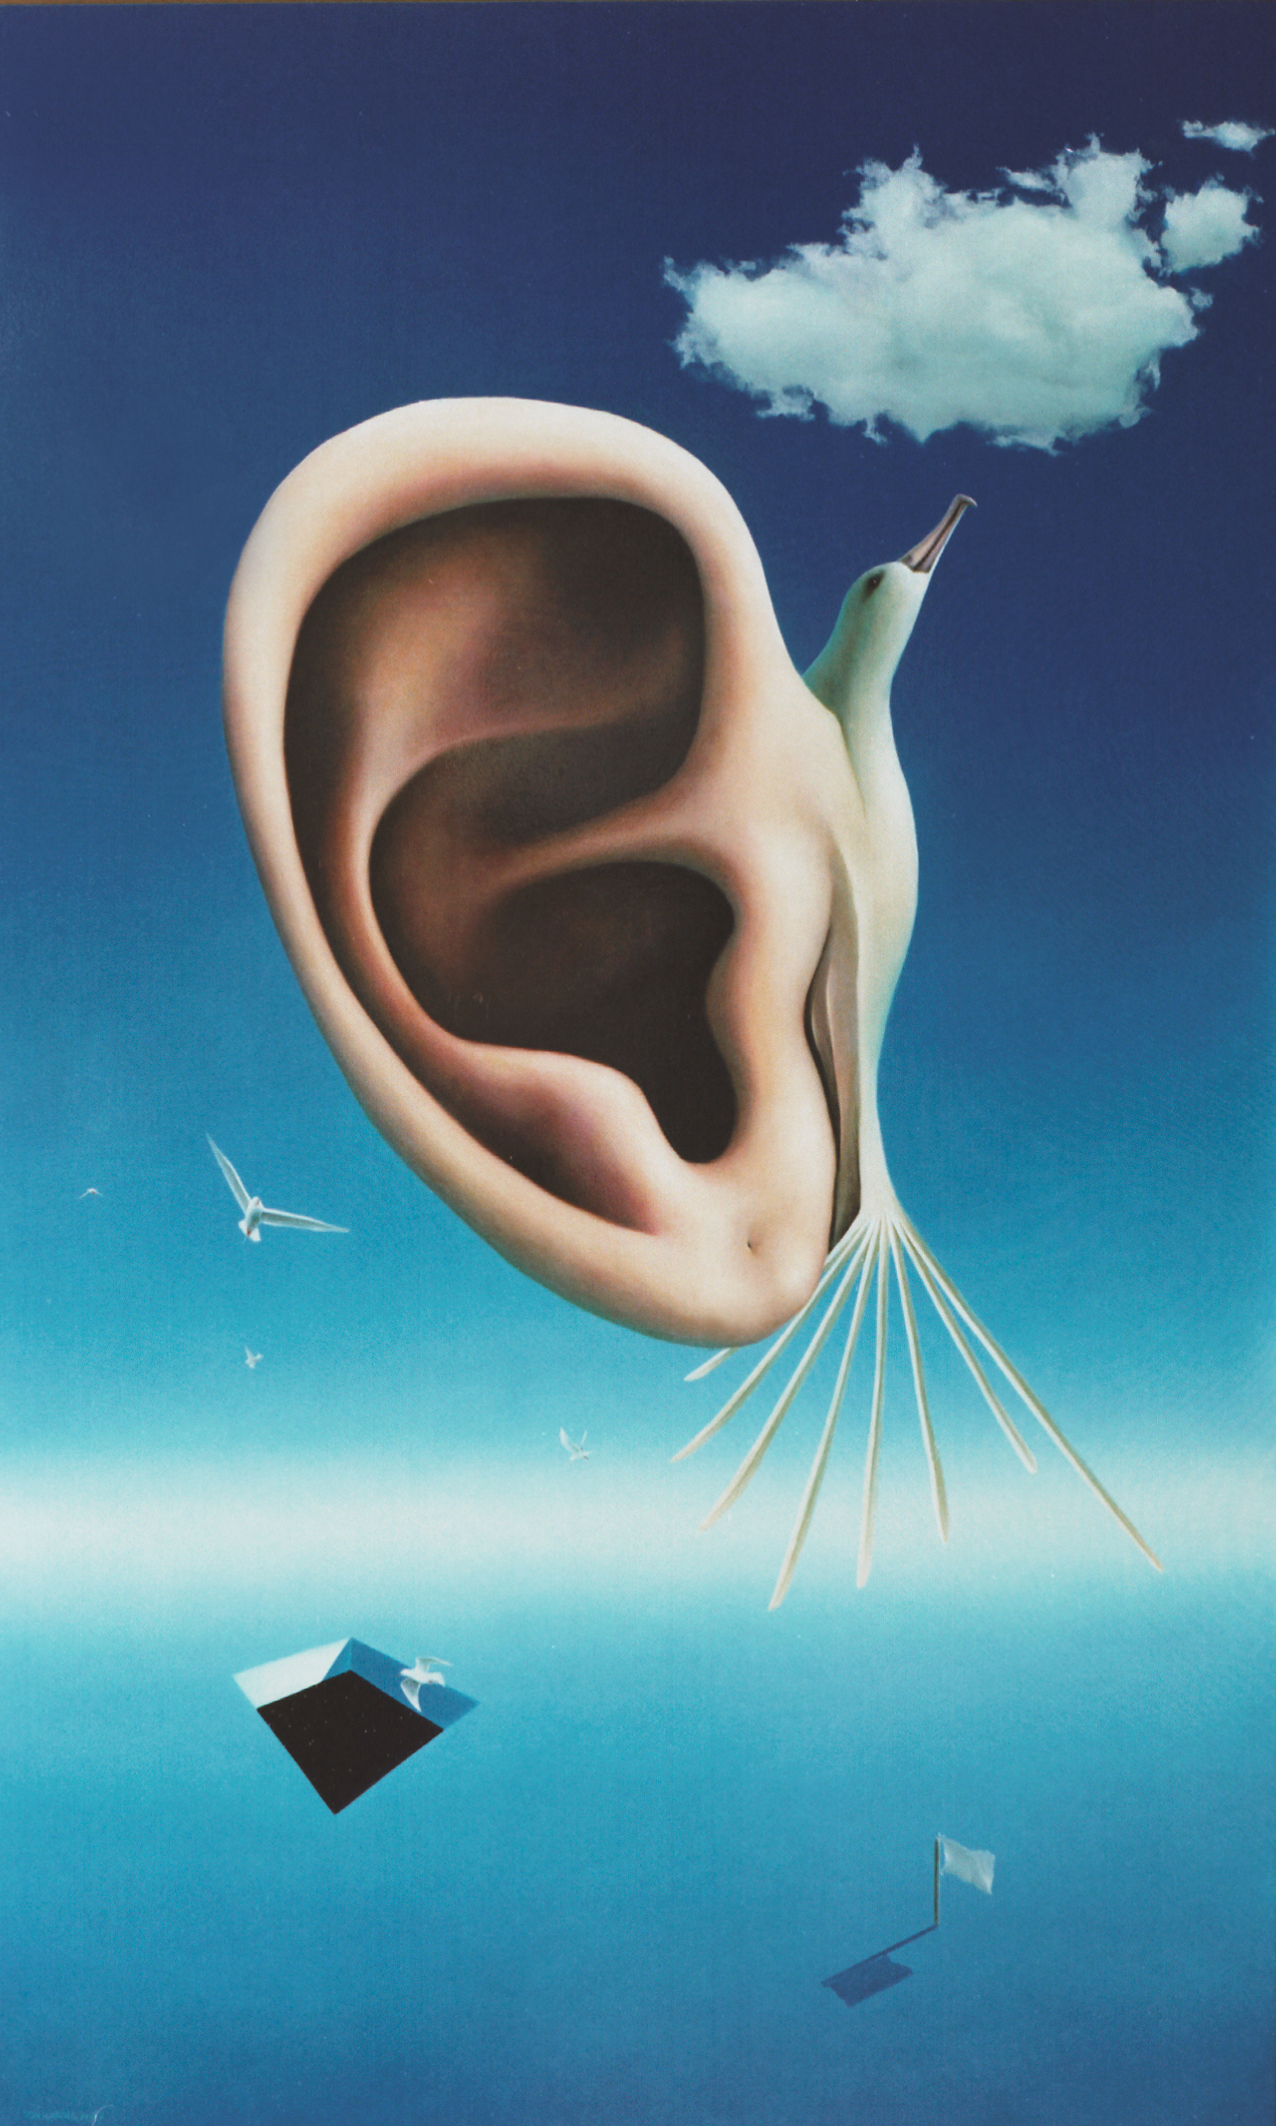 The sound of air